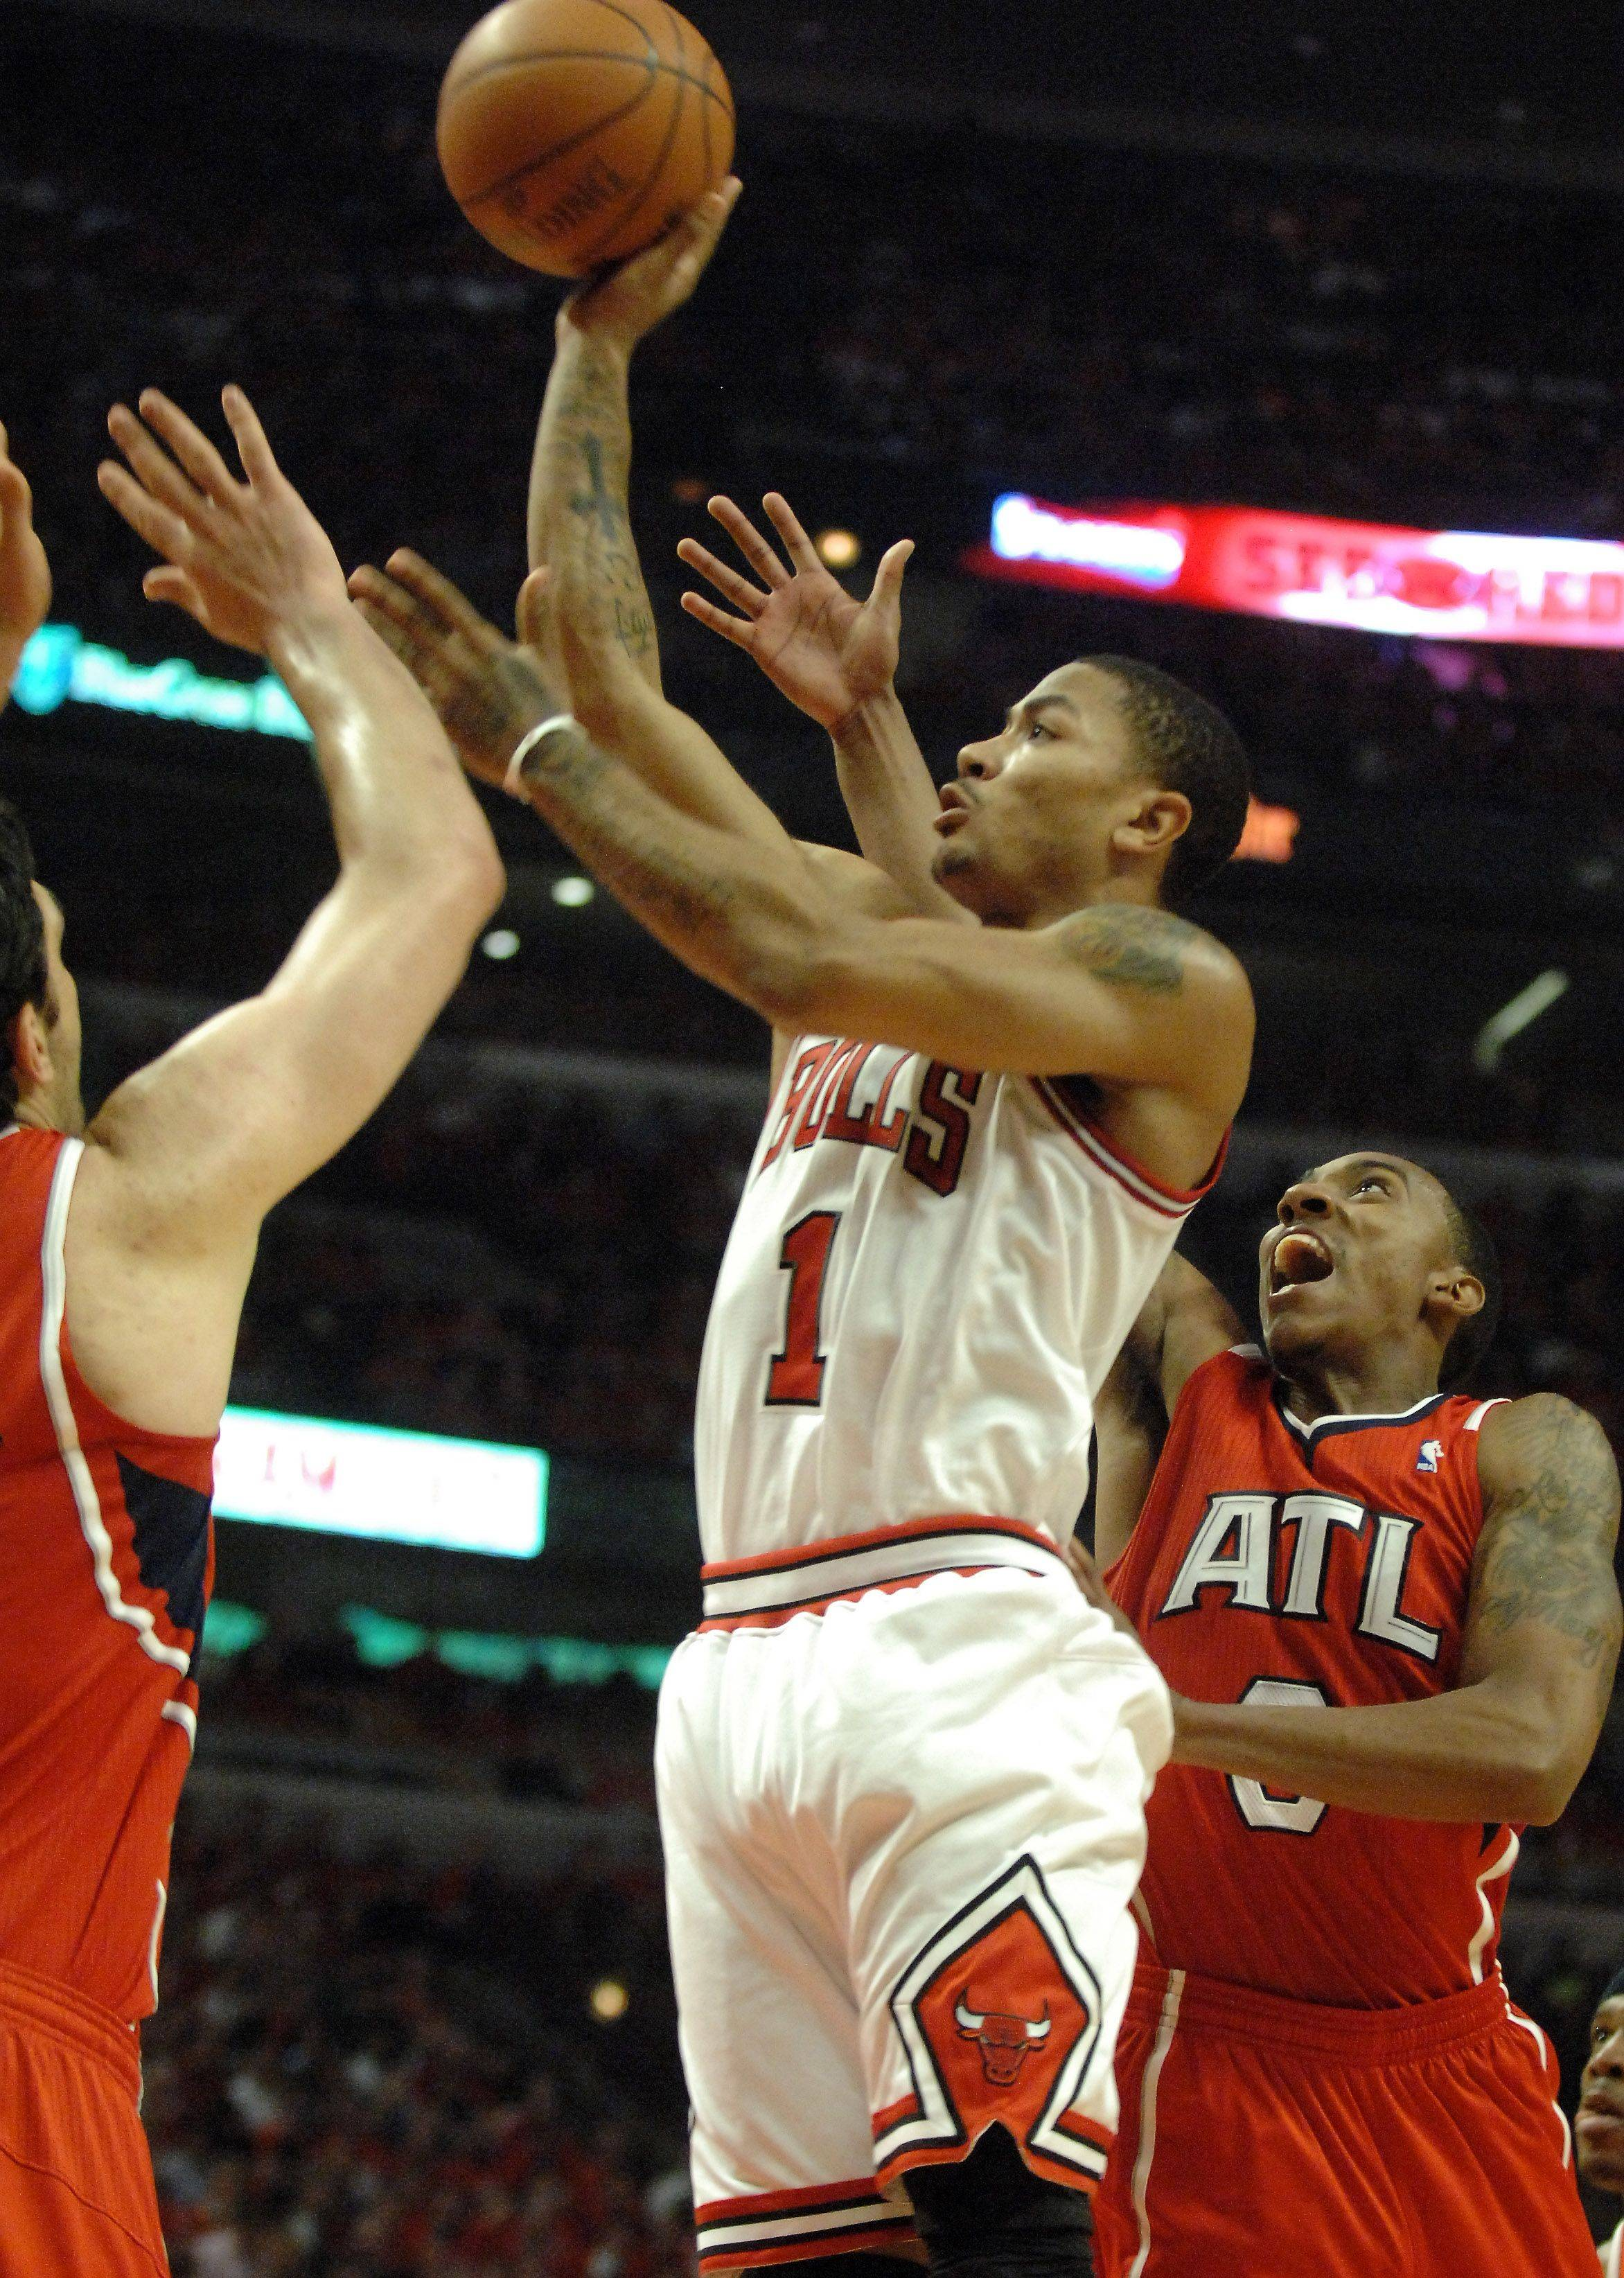 The Bulls' Derrick Rose drives past Atlanta's Jeff Teague, right, and over center Zaza Pachulia Tuesday.